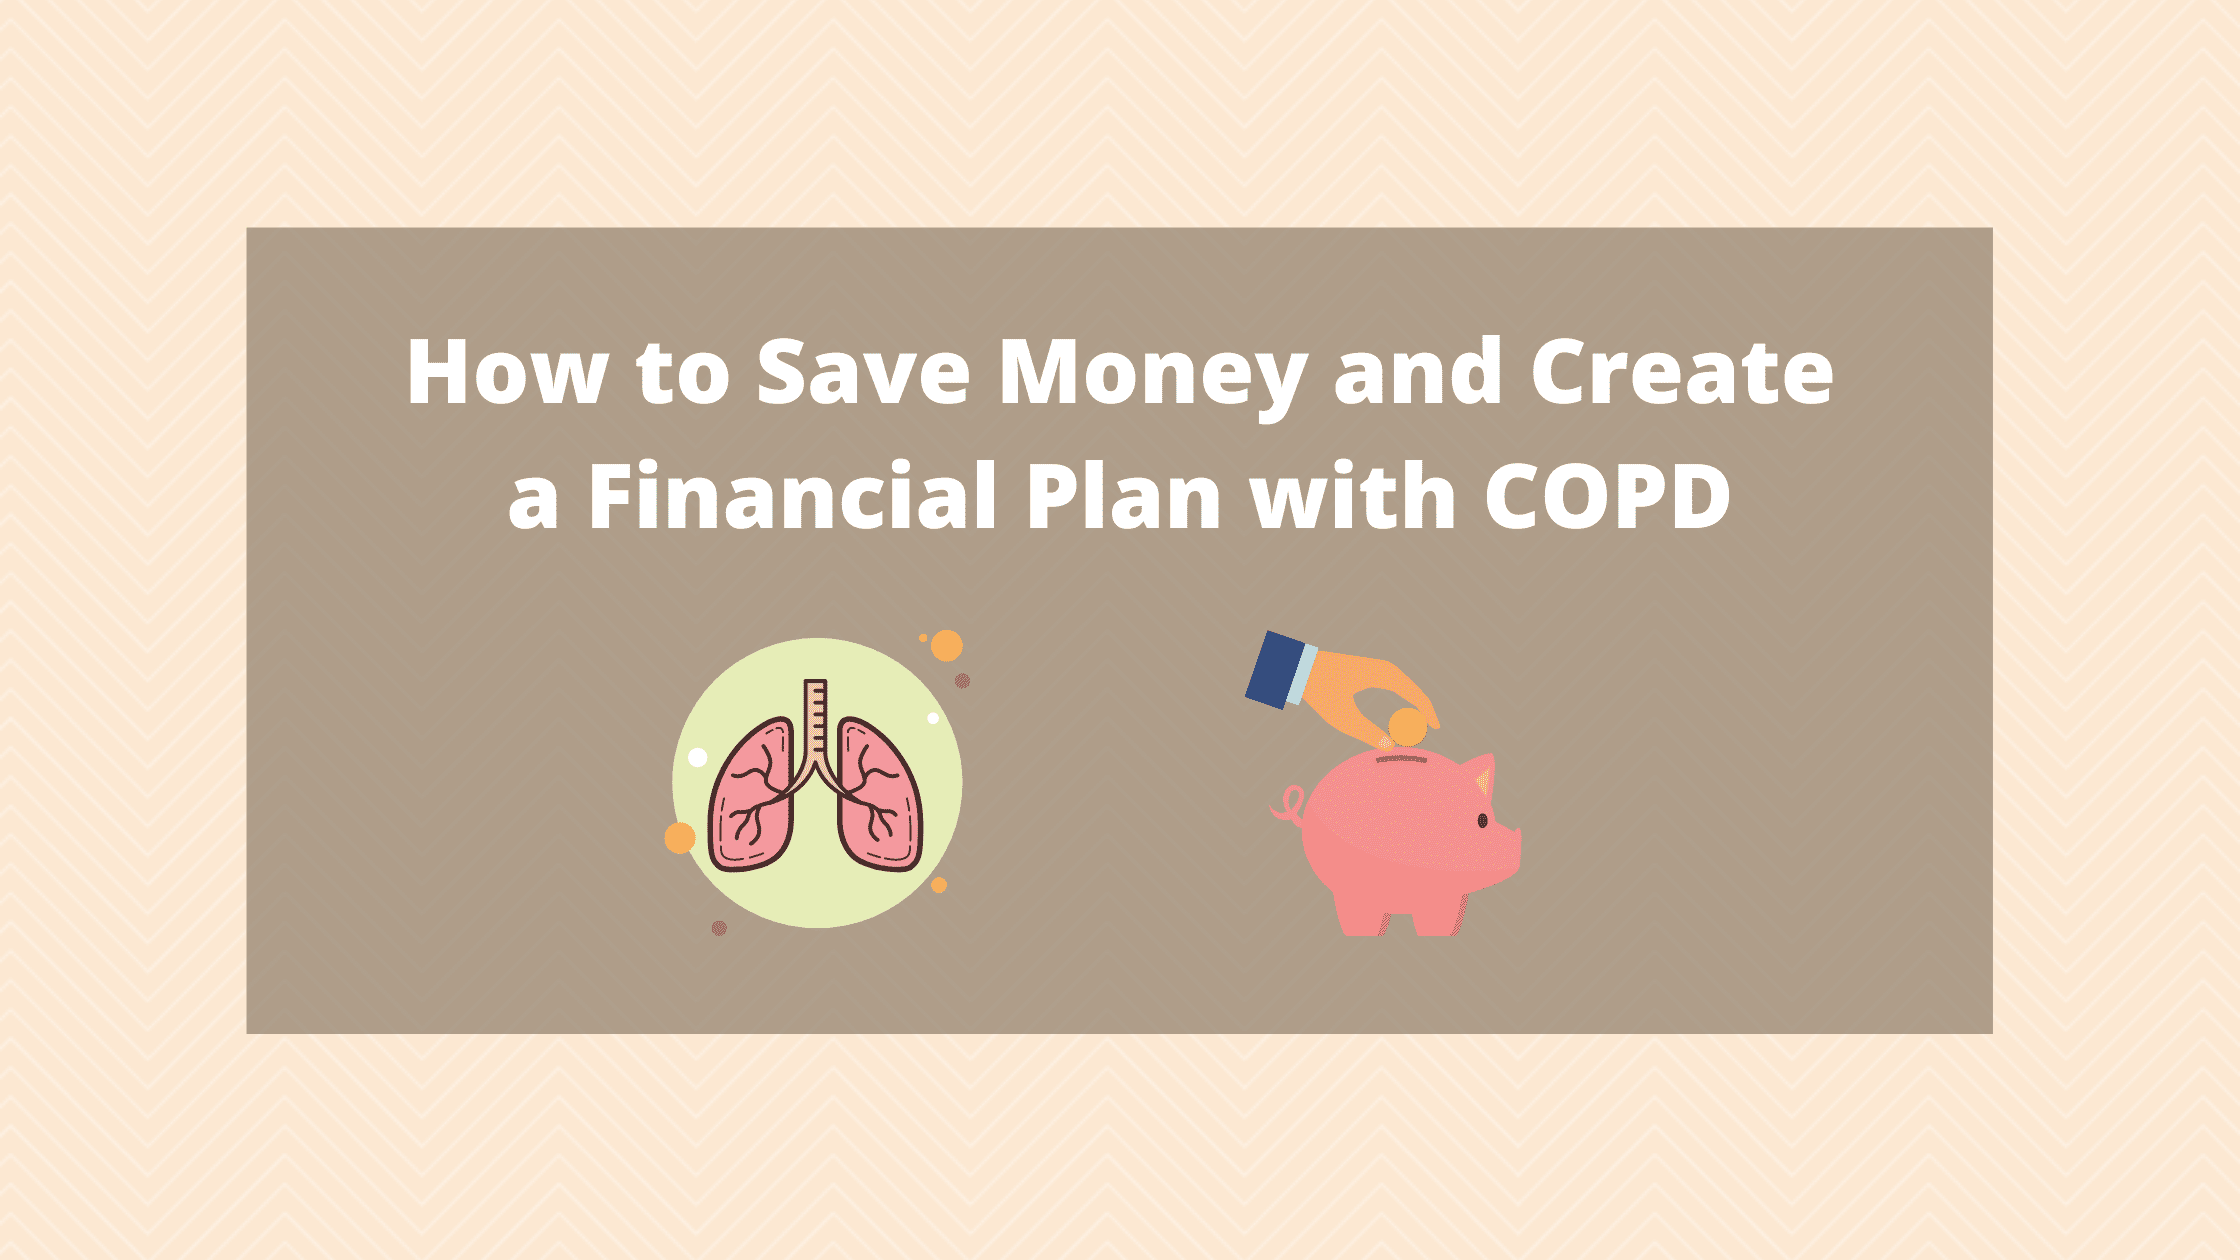 How to Save Money and Create a Financial Plan with COPD